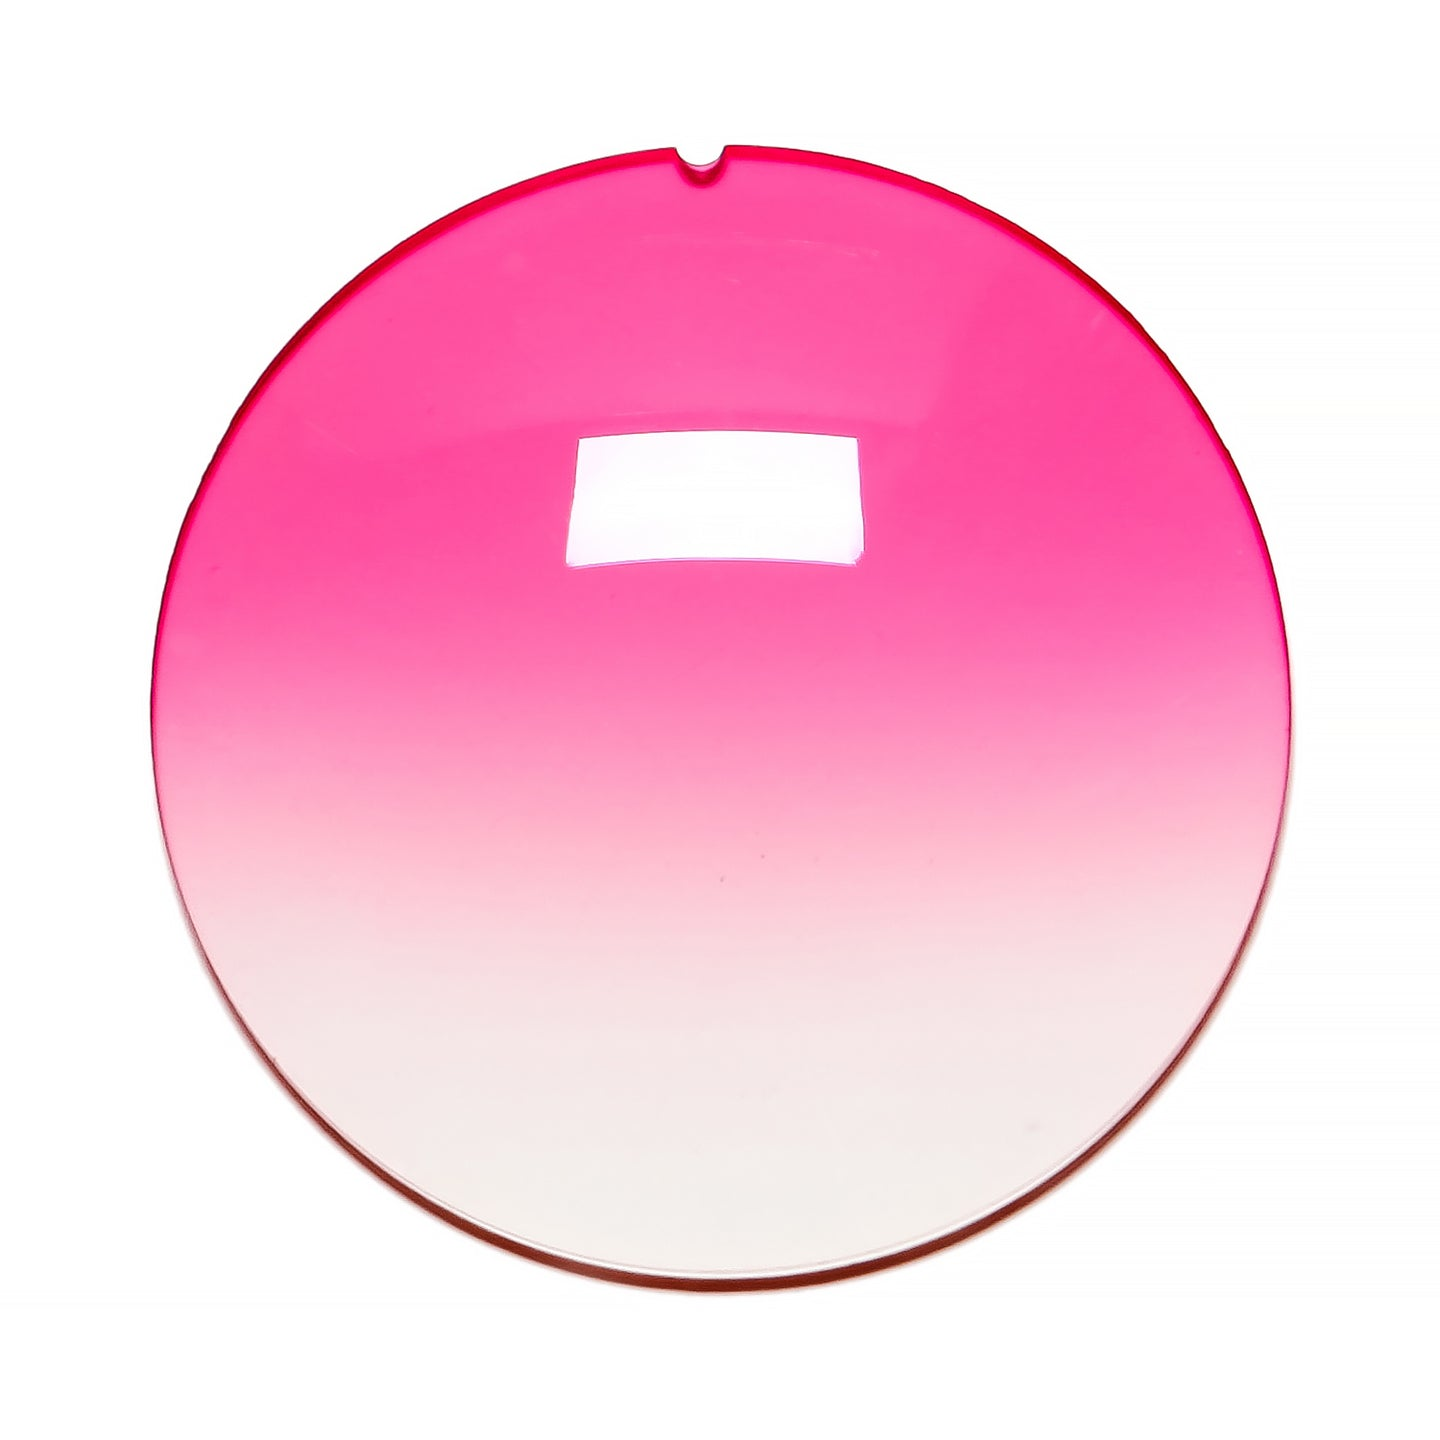 042 - Bright Pink Gradient Regular Curve Lens